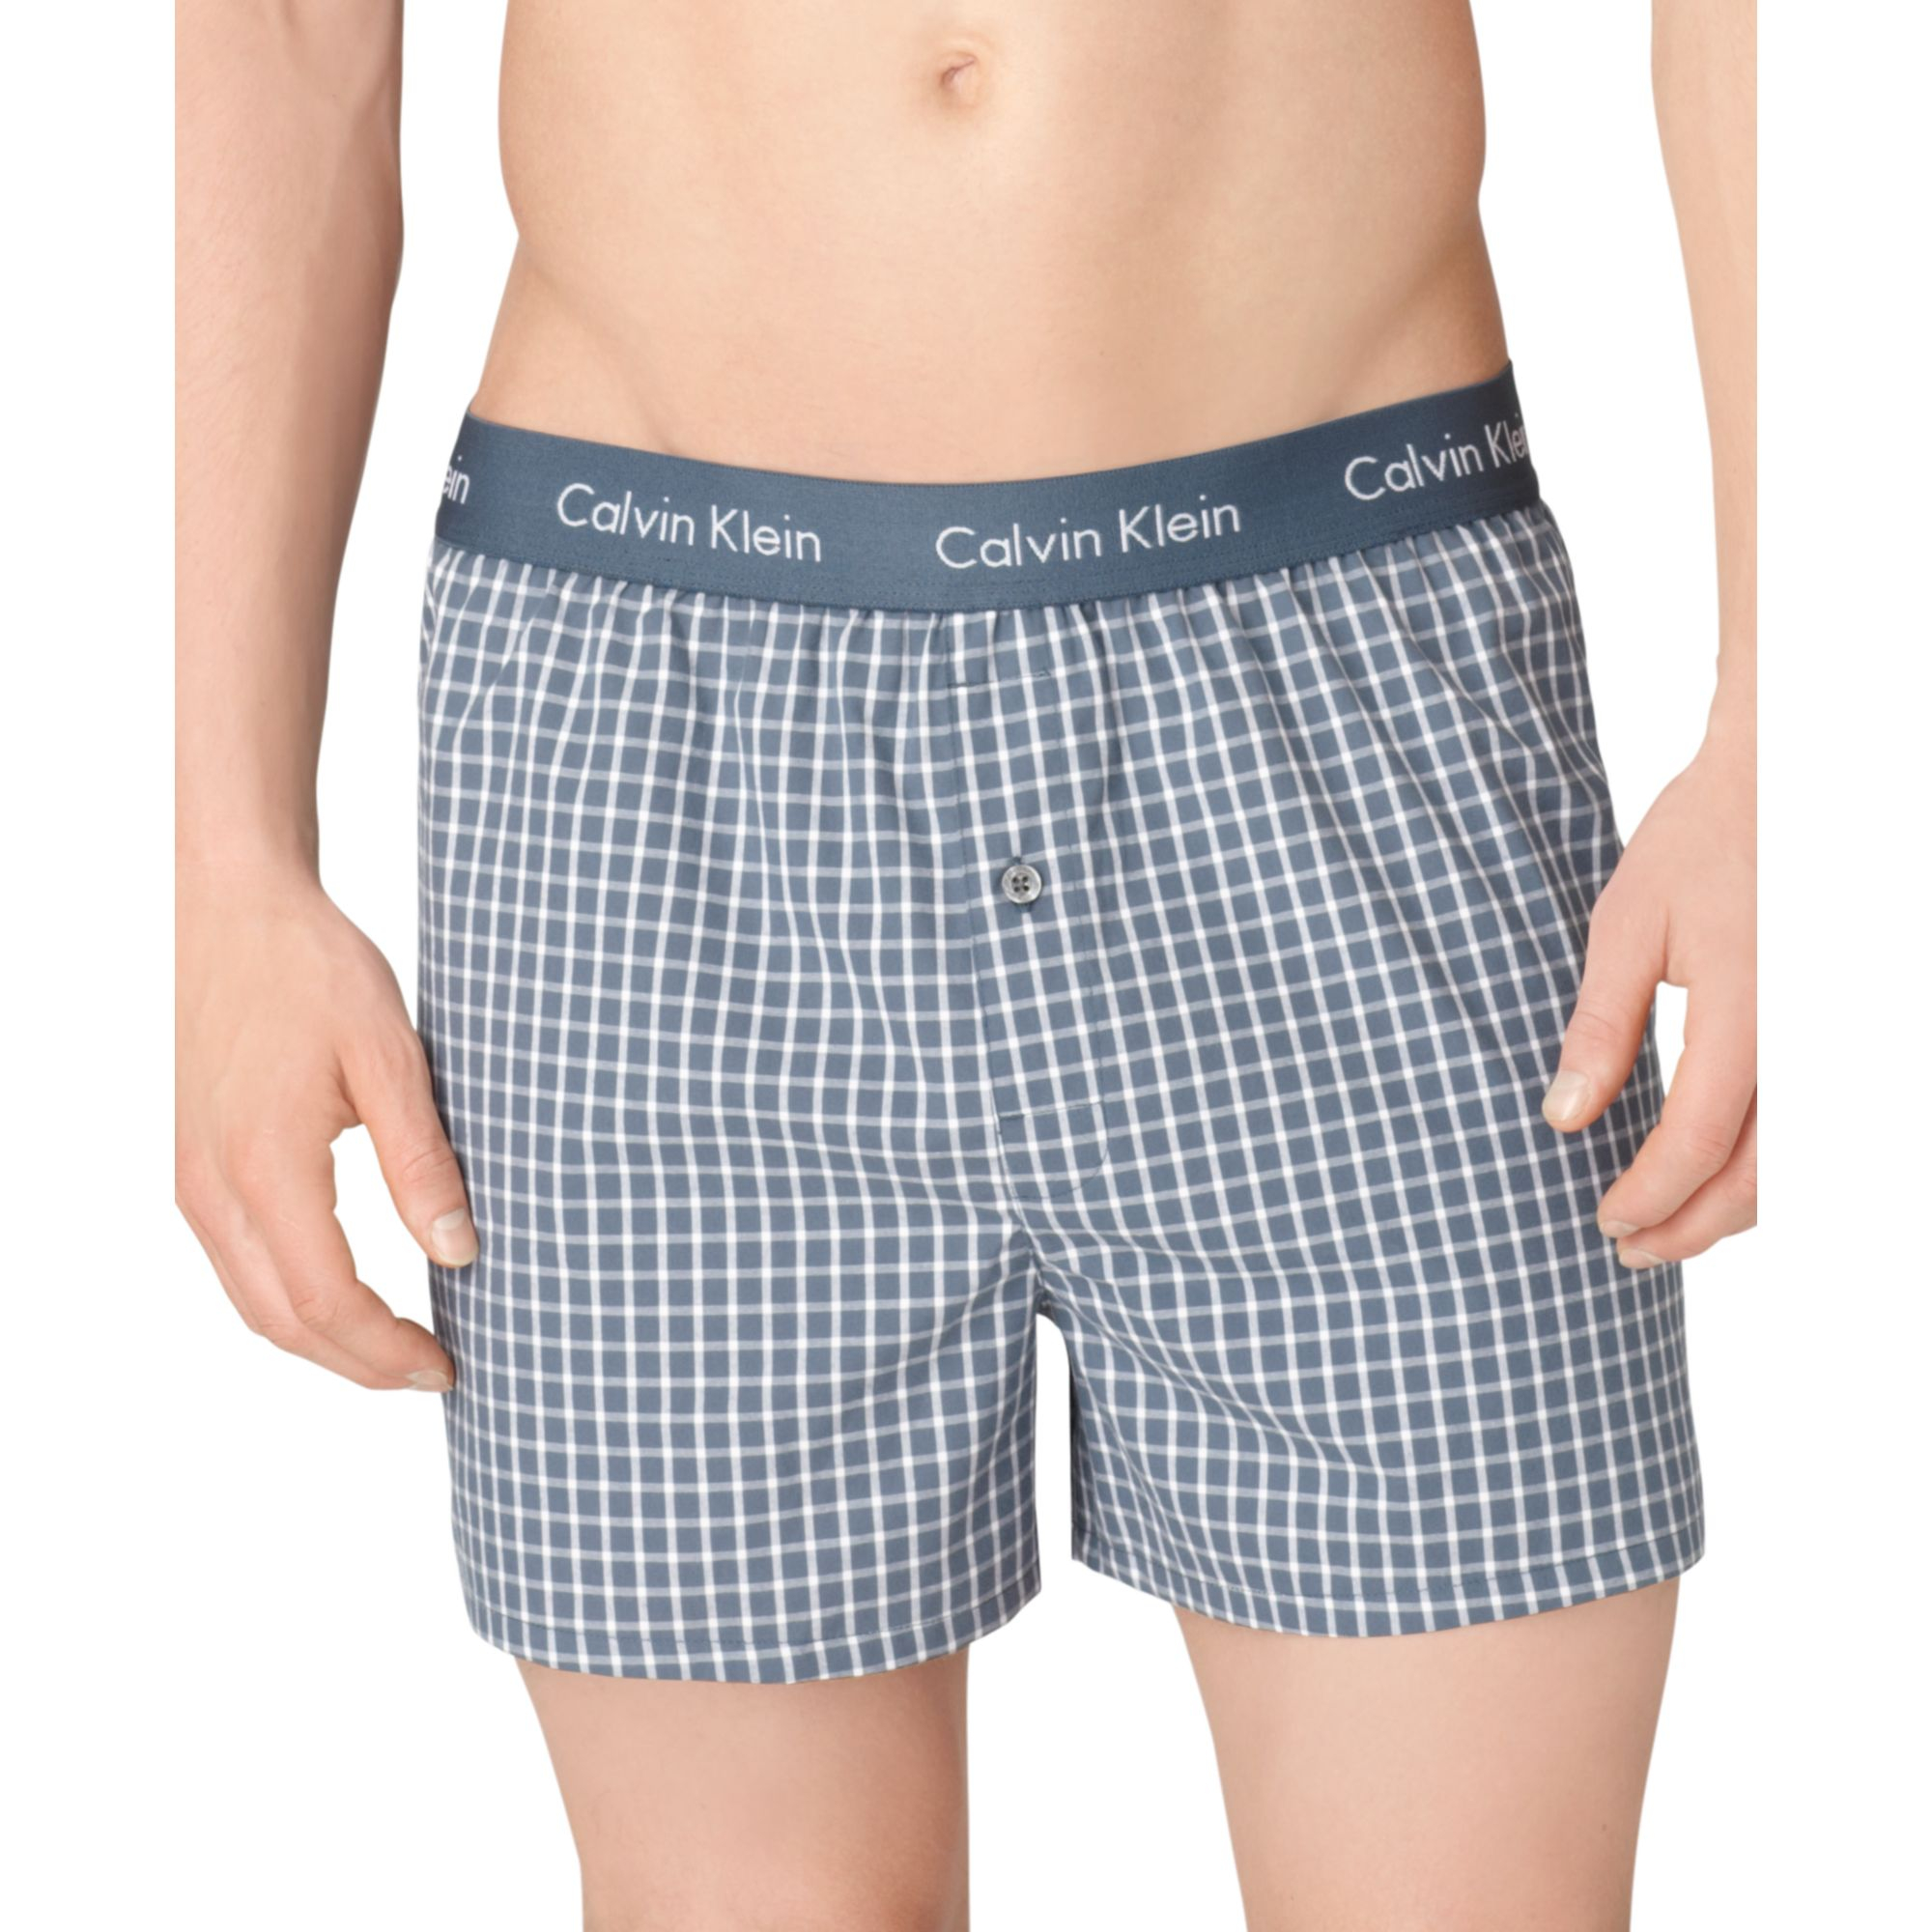 calvin klein men 39 s underwear slim fit woven boxer u1513 in gray for men micro plaid save 31. Black Bedroom Furniture Sets. Home Design Ideas